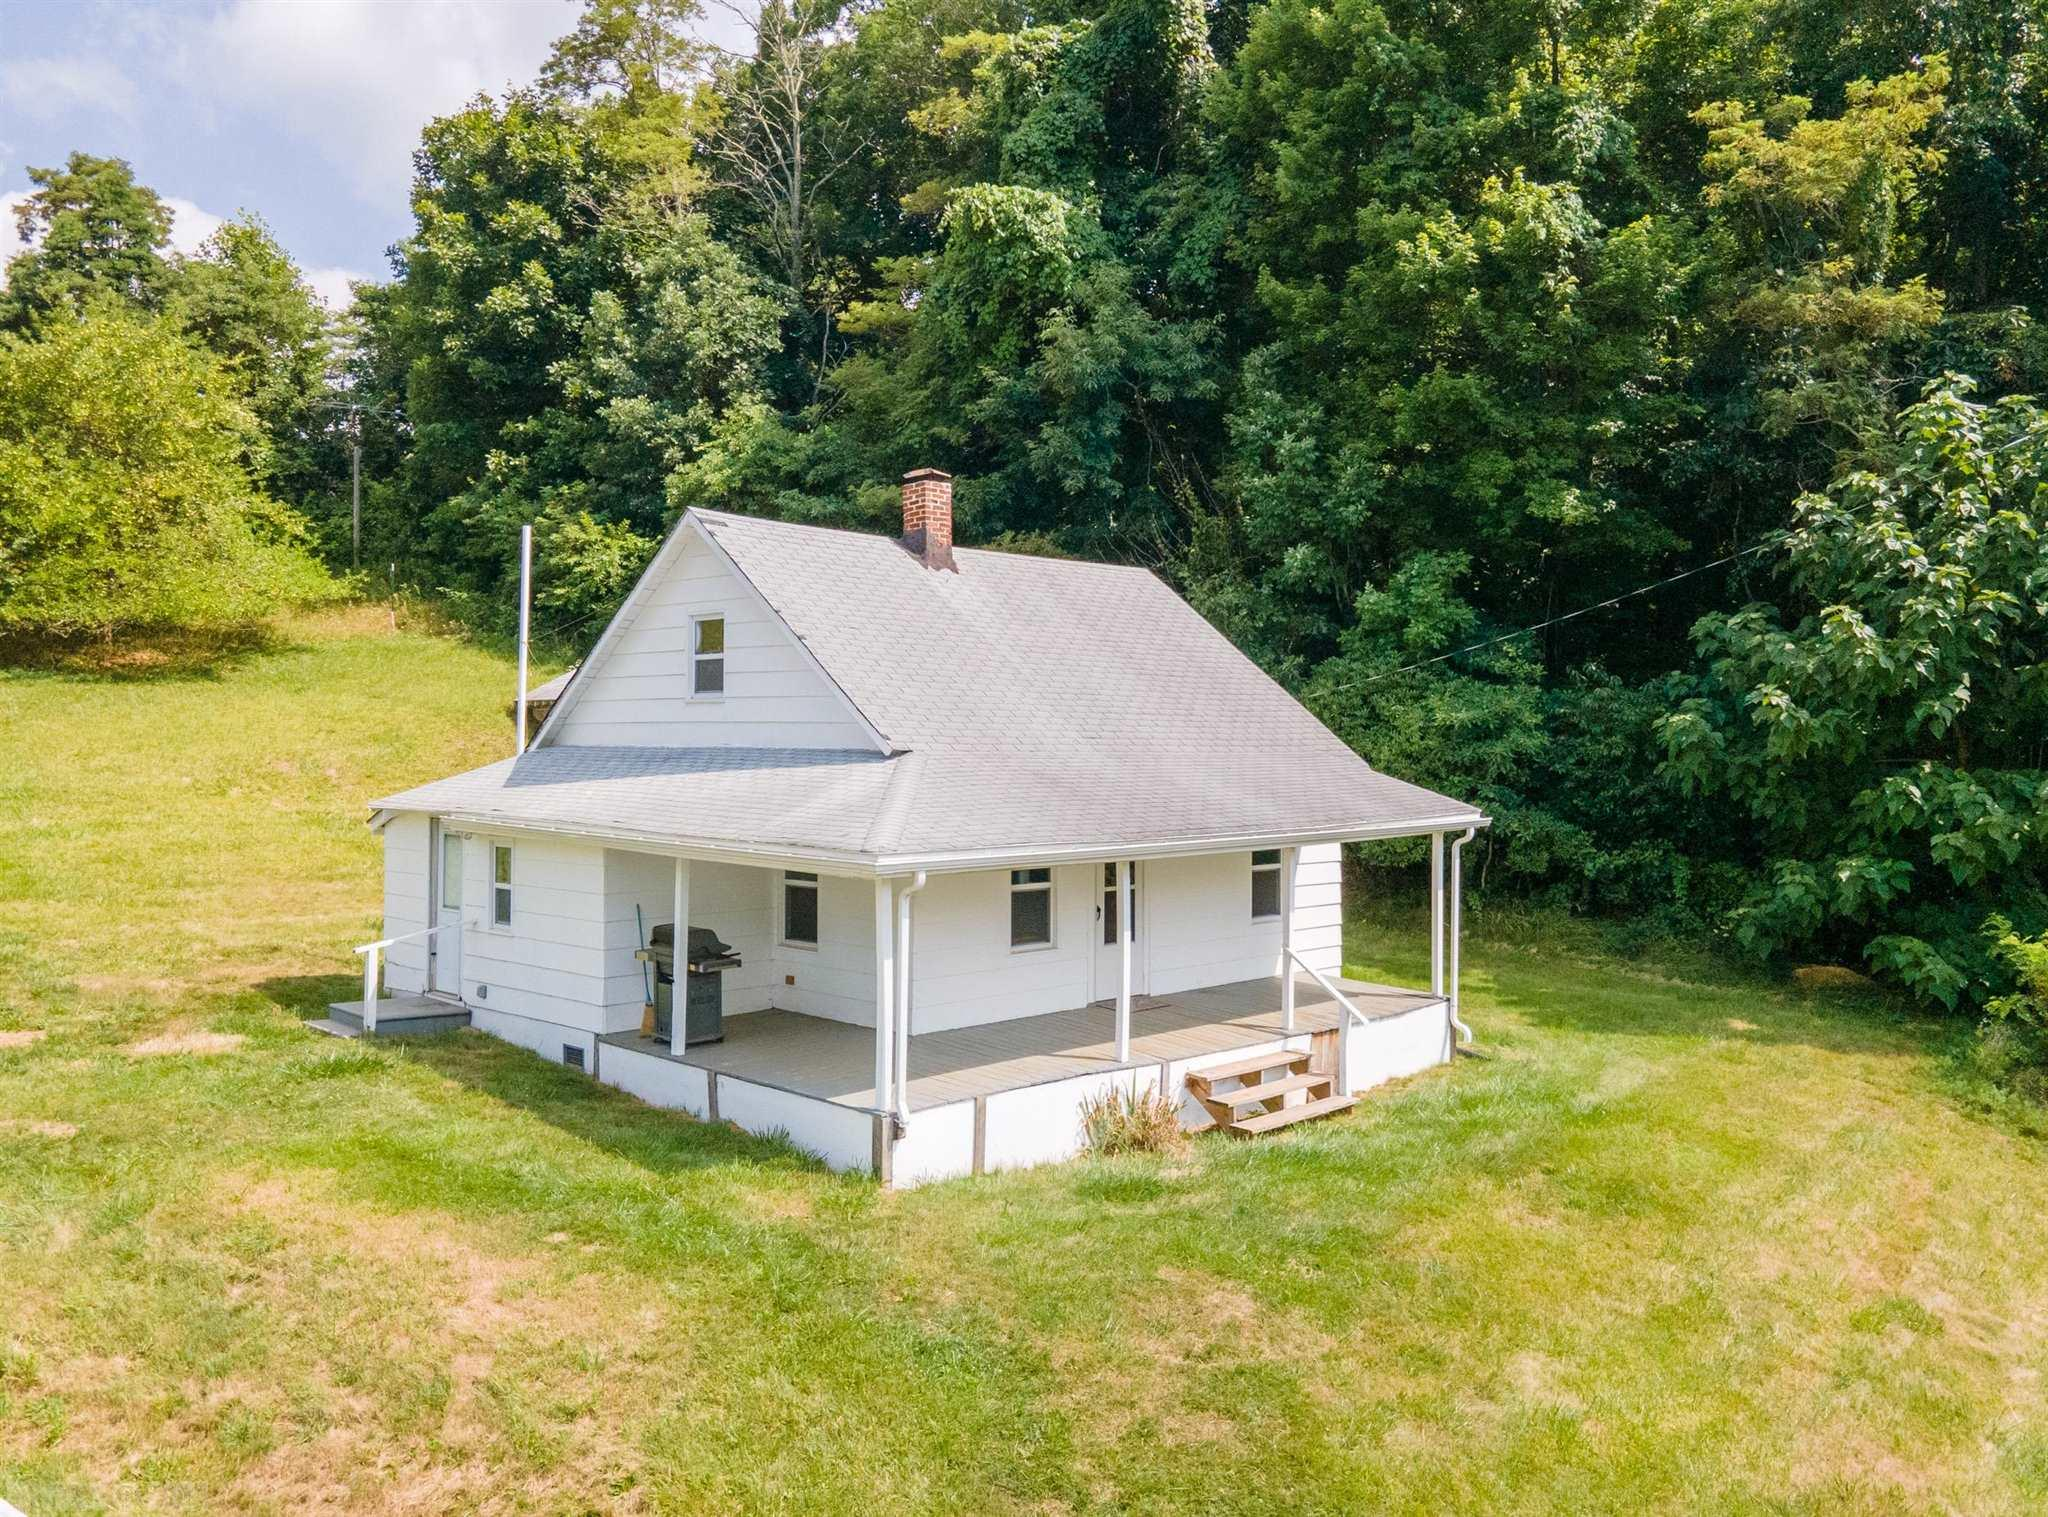 Cozy house in beautiful Floyd County. This 2 bedroom one bath home is perfect with 2.75 acres of open land. A small metal carport and a small out building. Home had updates in 2018 including new electrical panel, flooring, custom trim and paint Great opportunity to own an affordable home in a great location.